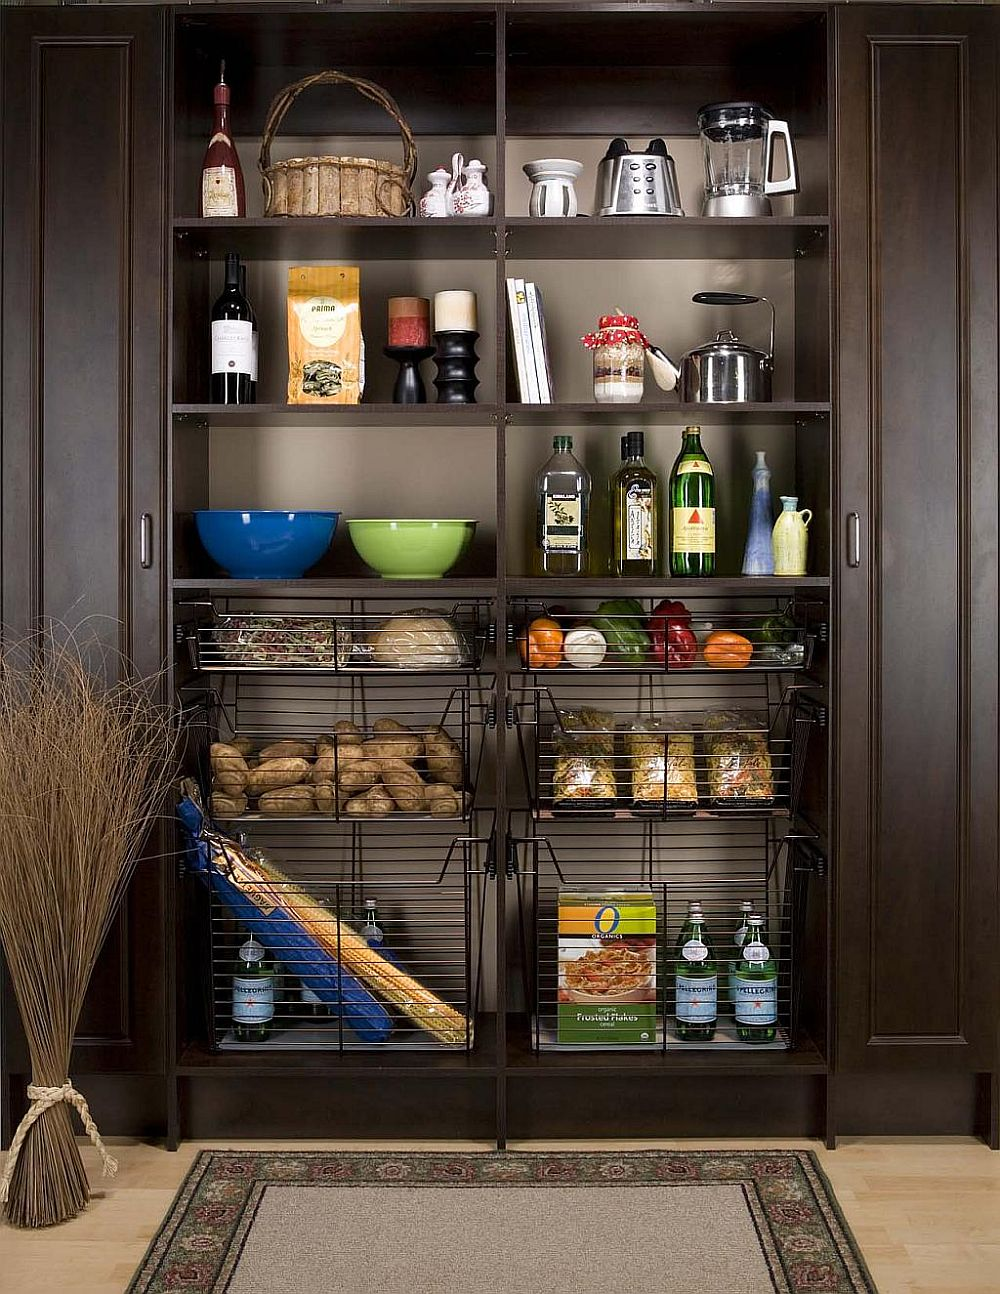 Wiry baskets bring additional storage space to the open pantry